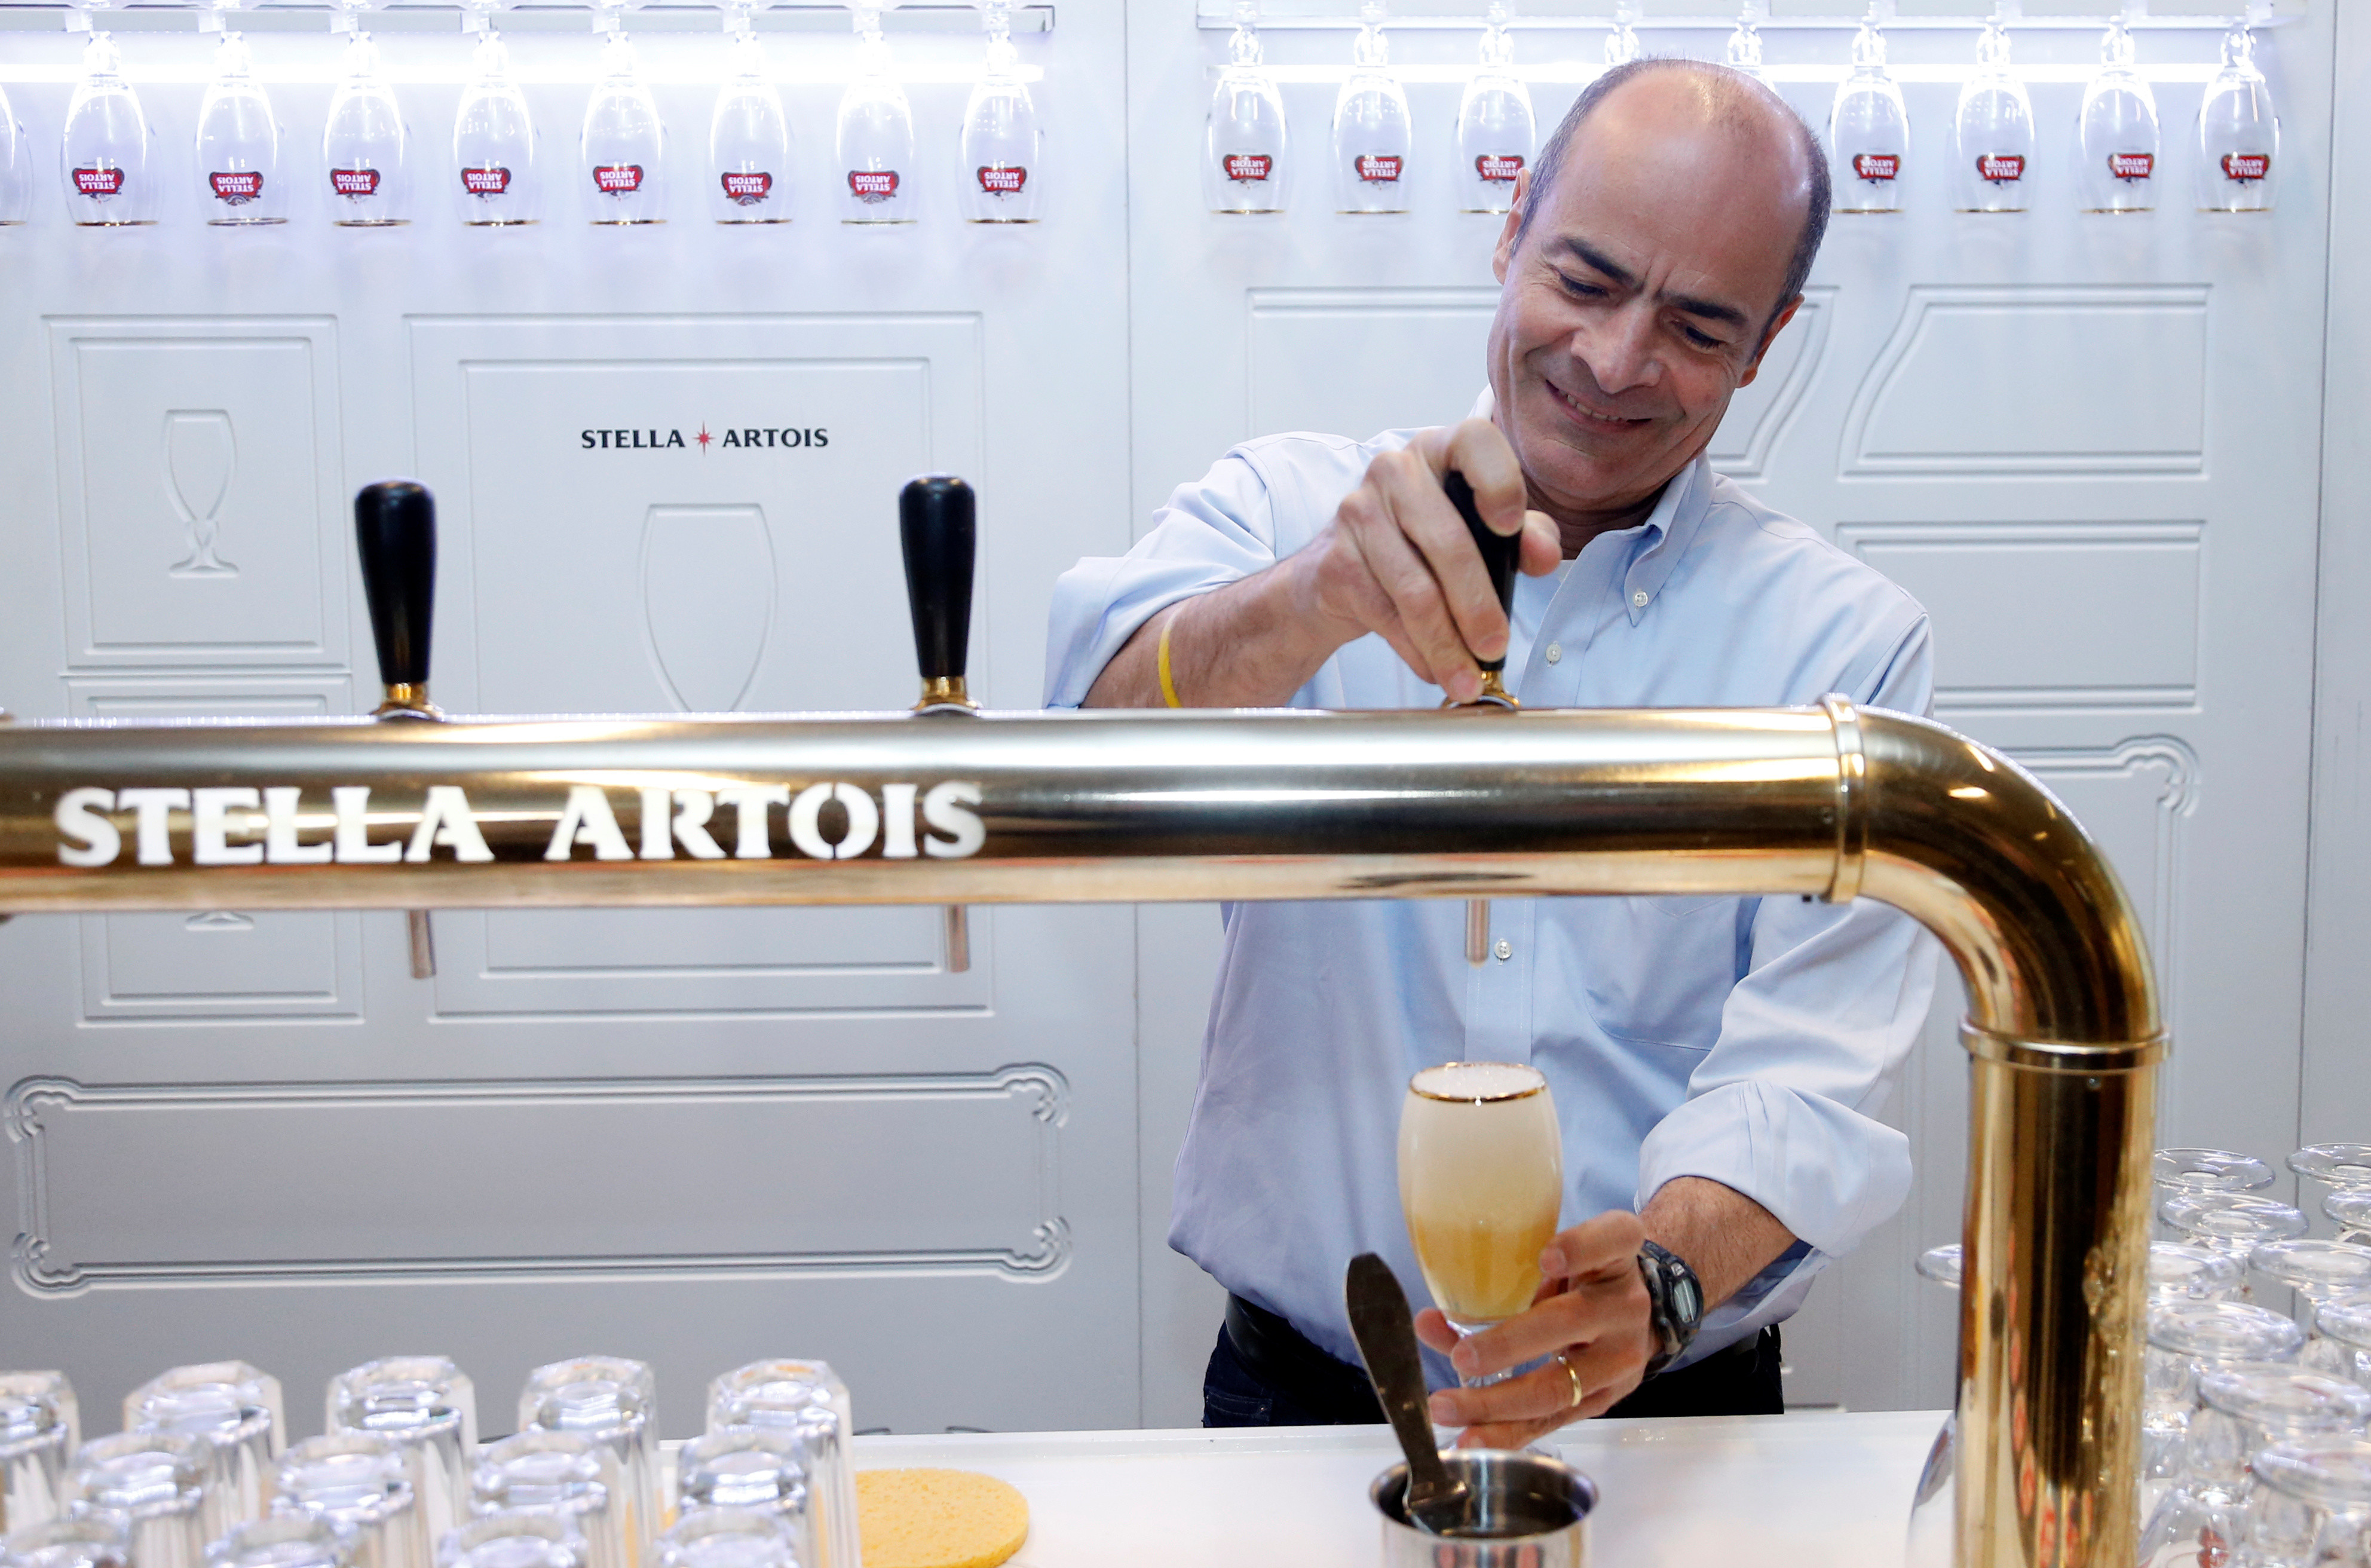 Carlos Brito, Chief Executive of Anheuser-Busch InBev, taps a Stella Artois beer after a news conference in Leuven, Belgium March 1, 2018.